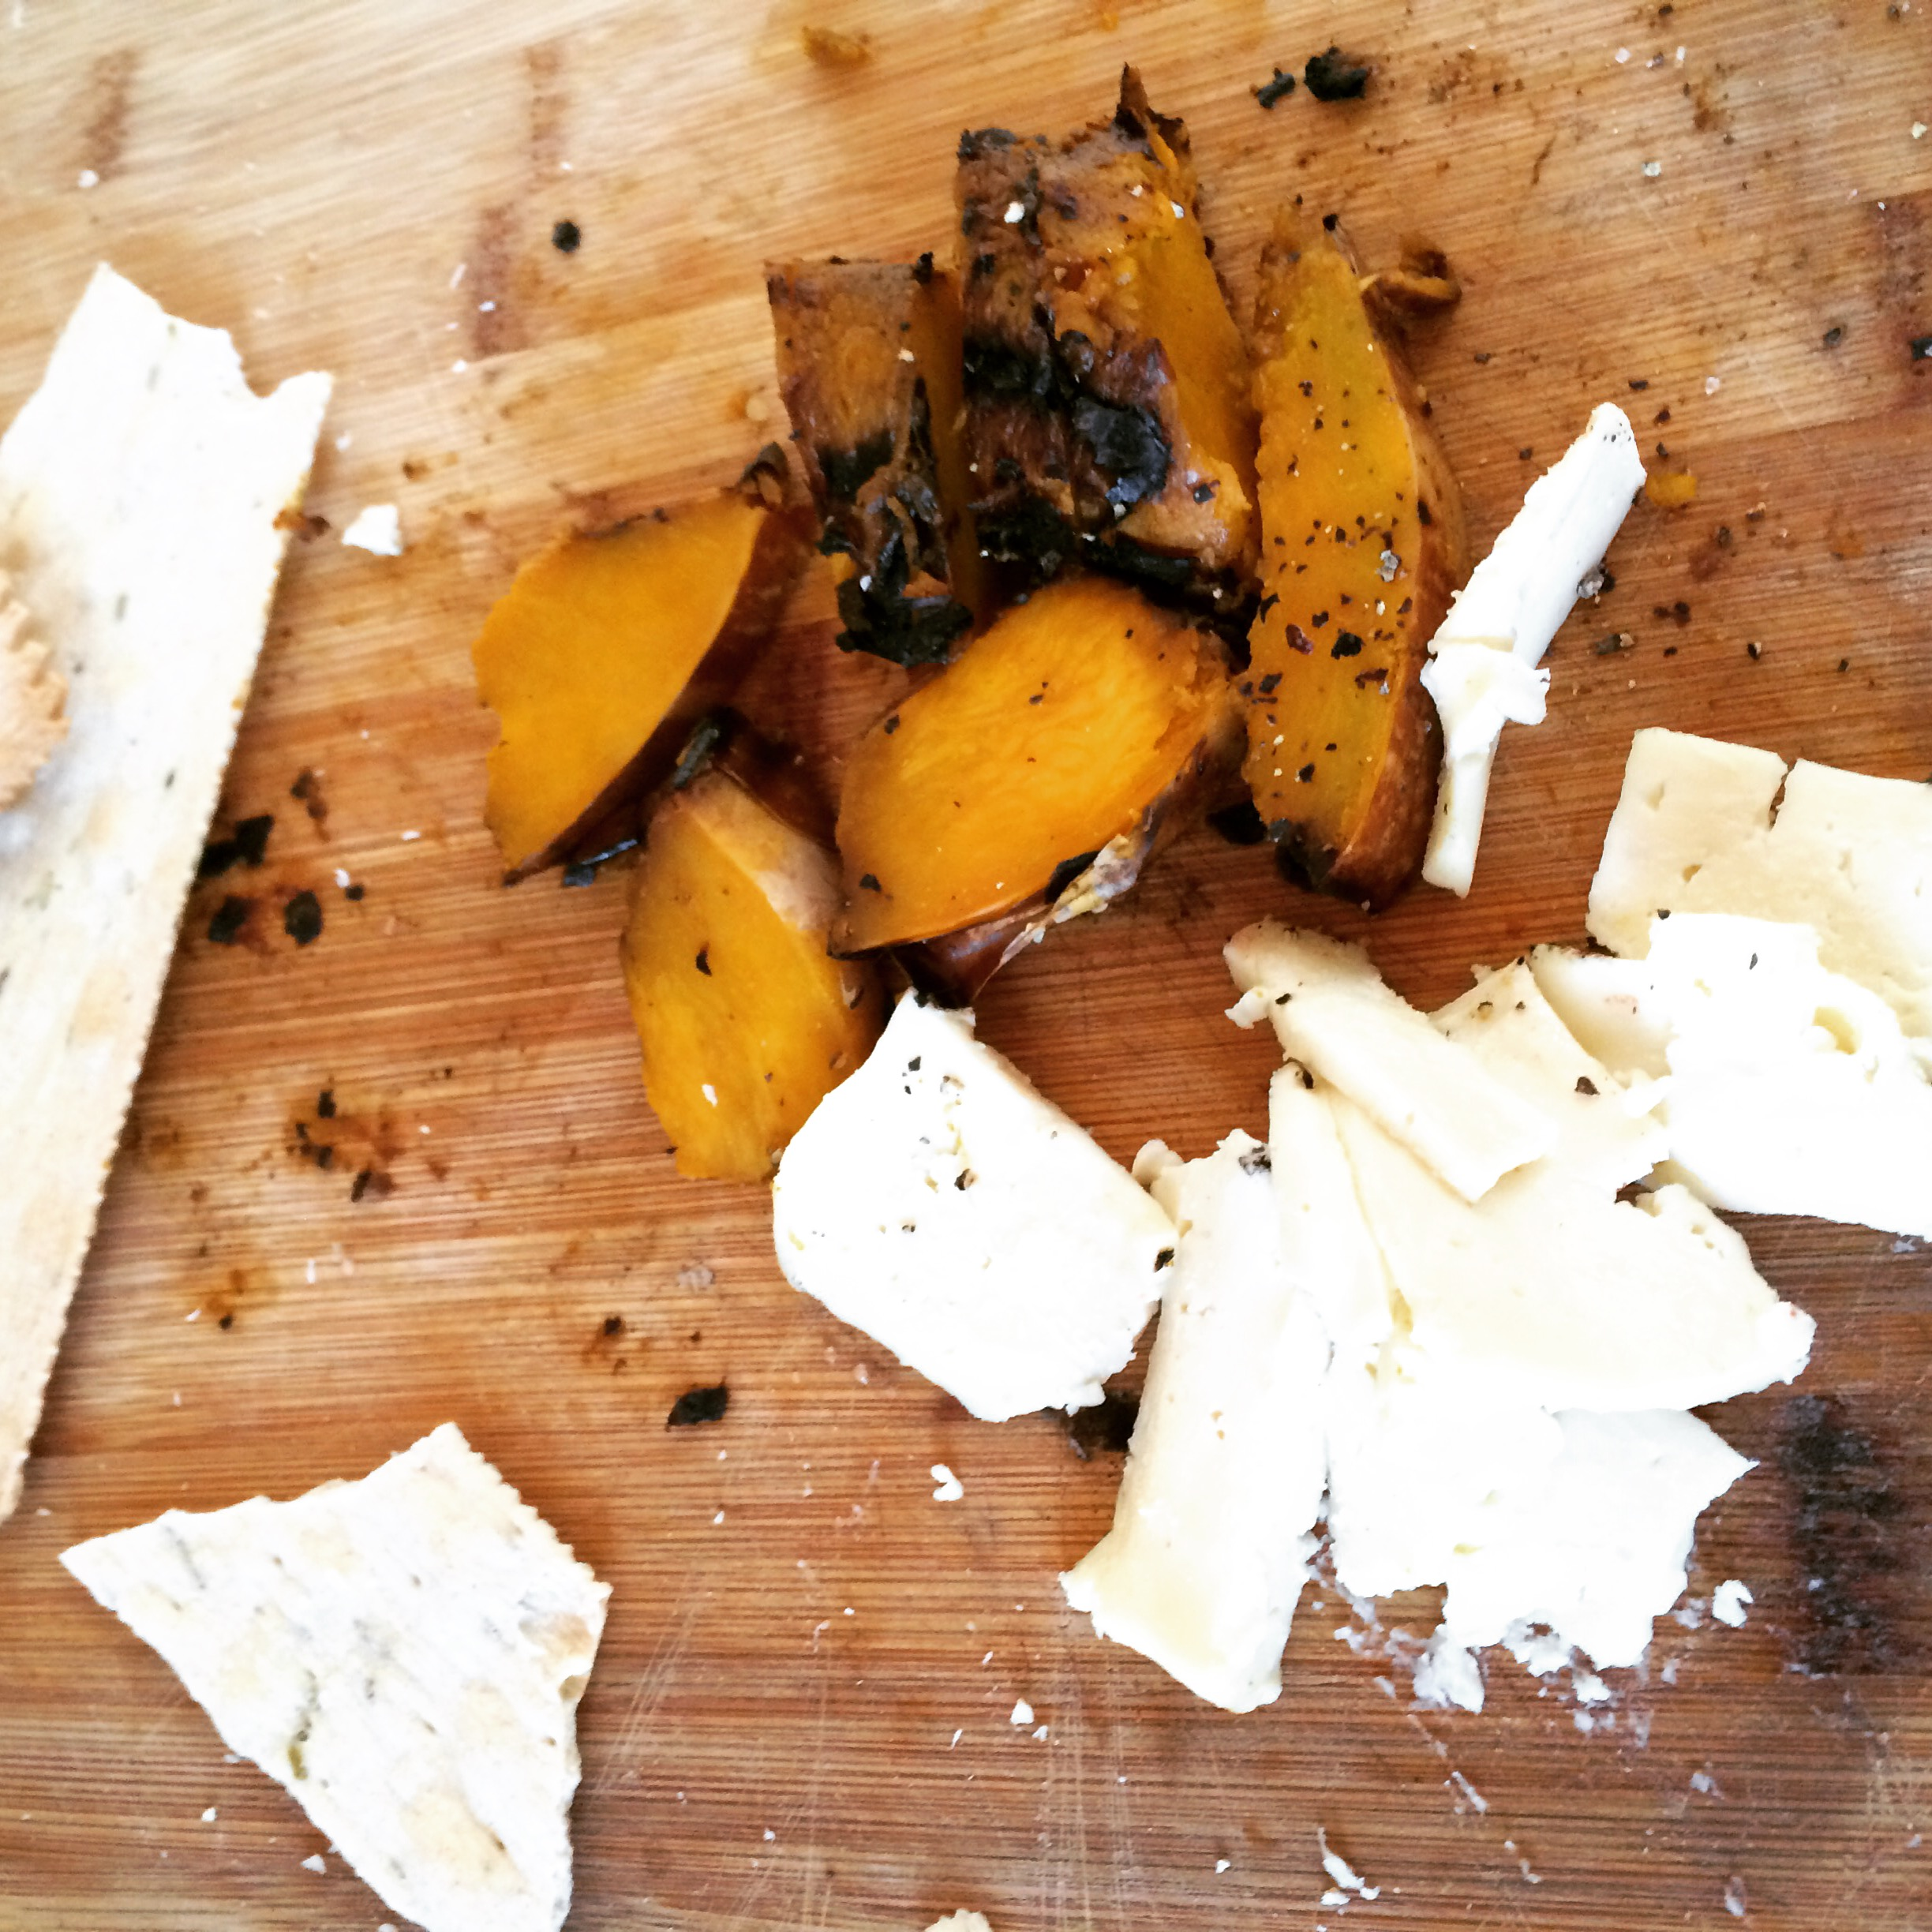 Leftover grilled butternut squash, queso blanco, and Trader Joe's crackers, served as an impromptu appetizer at our home.